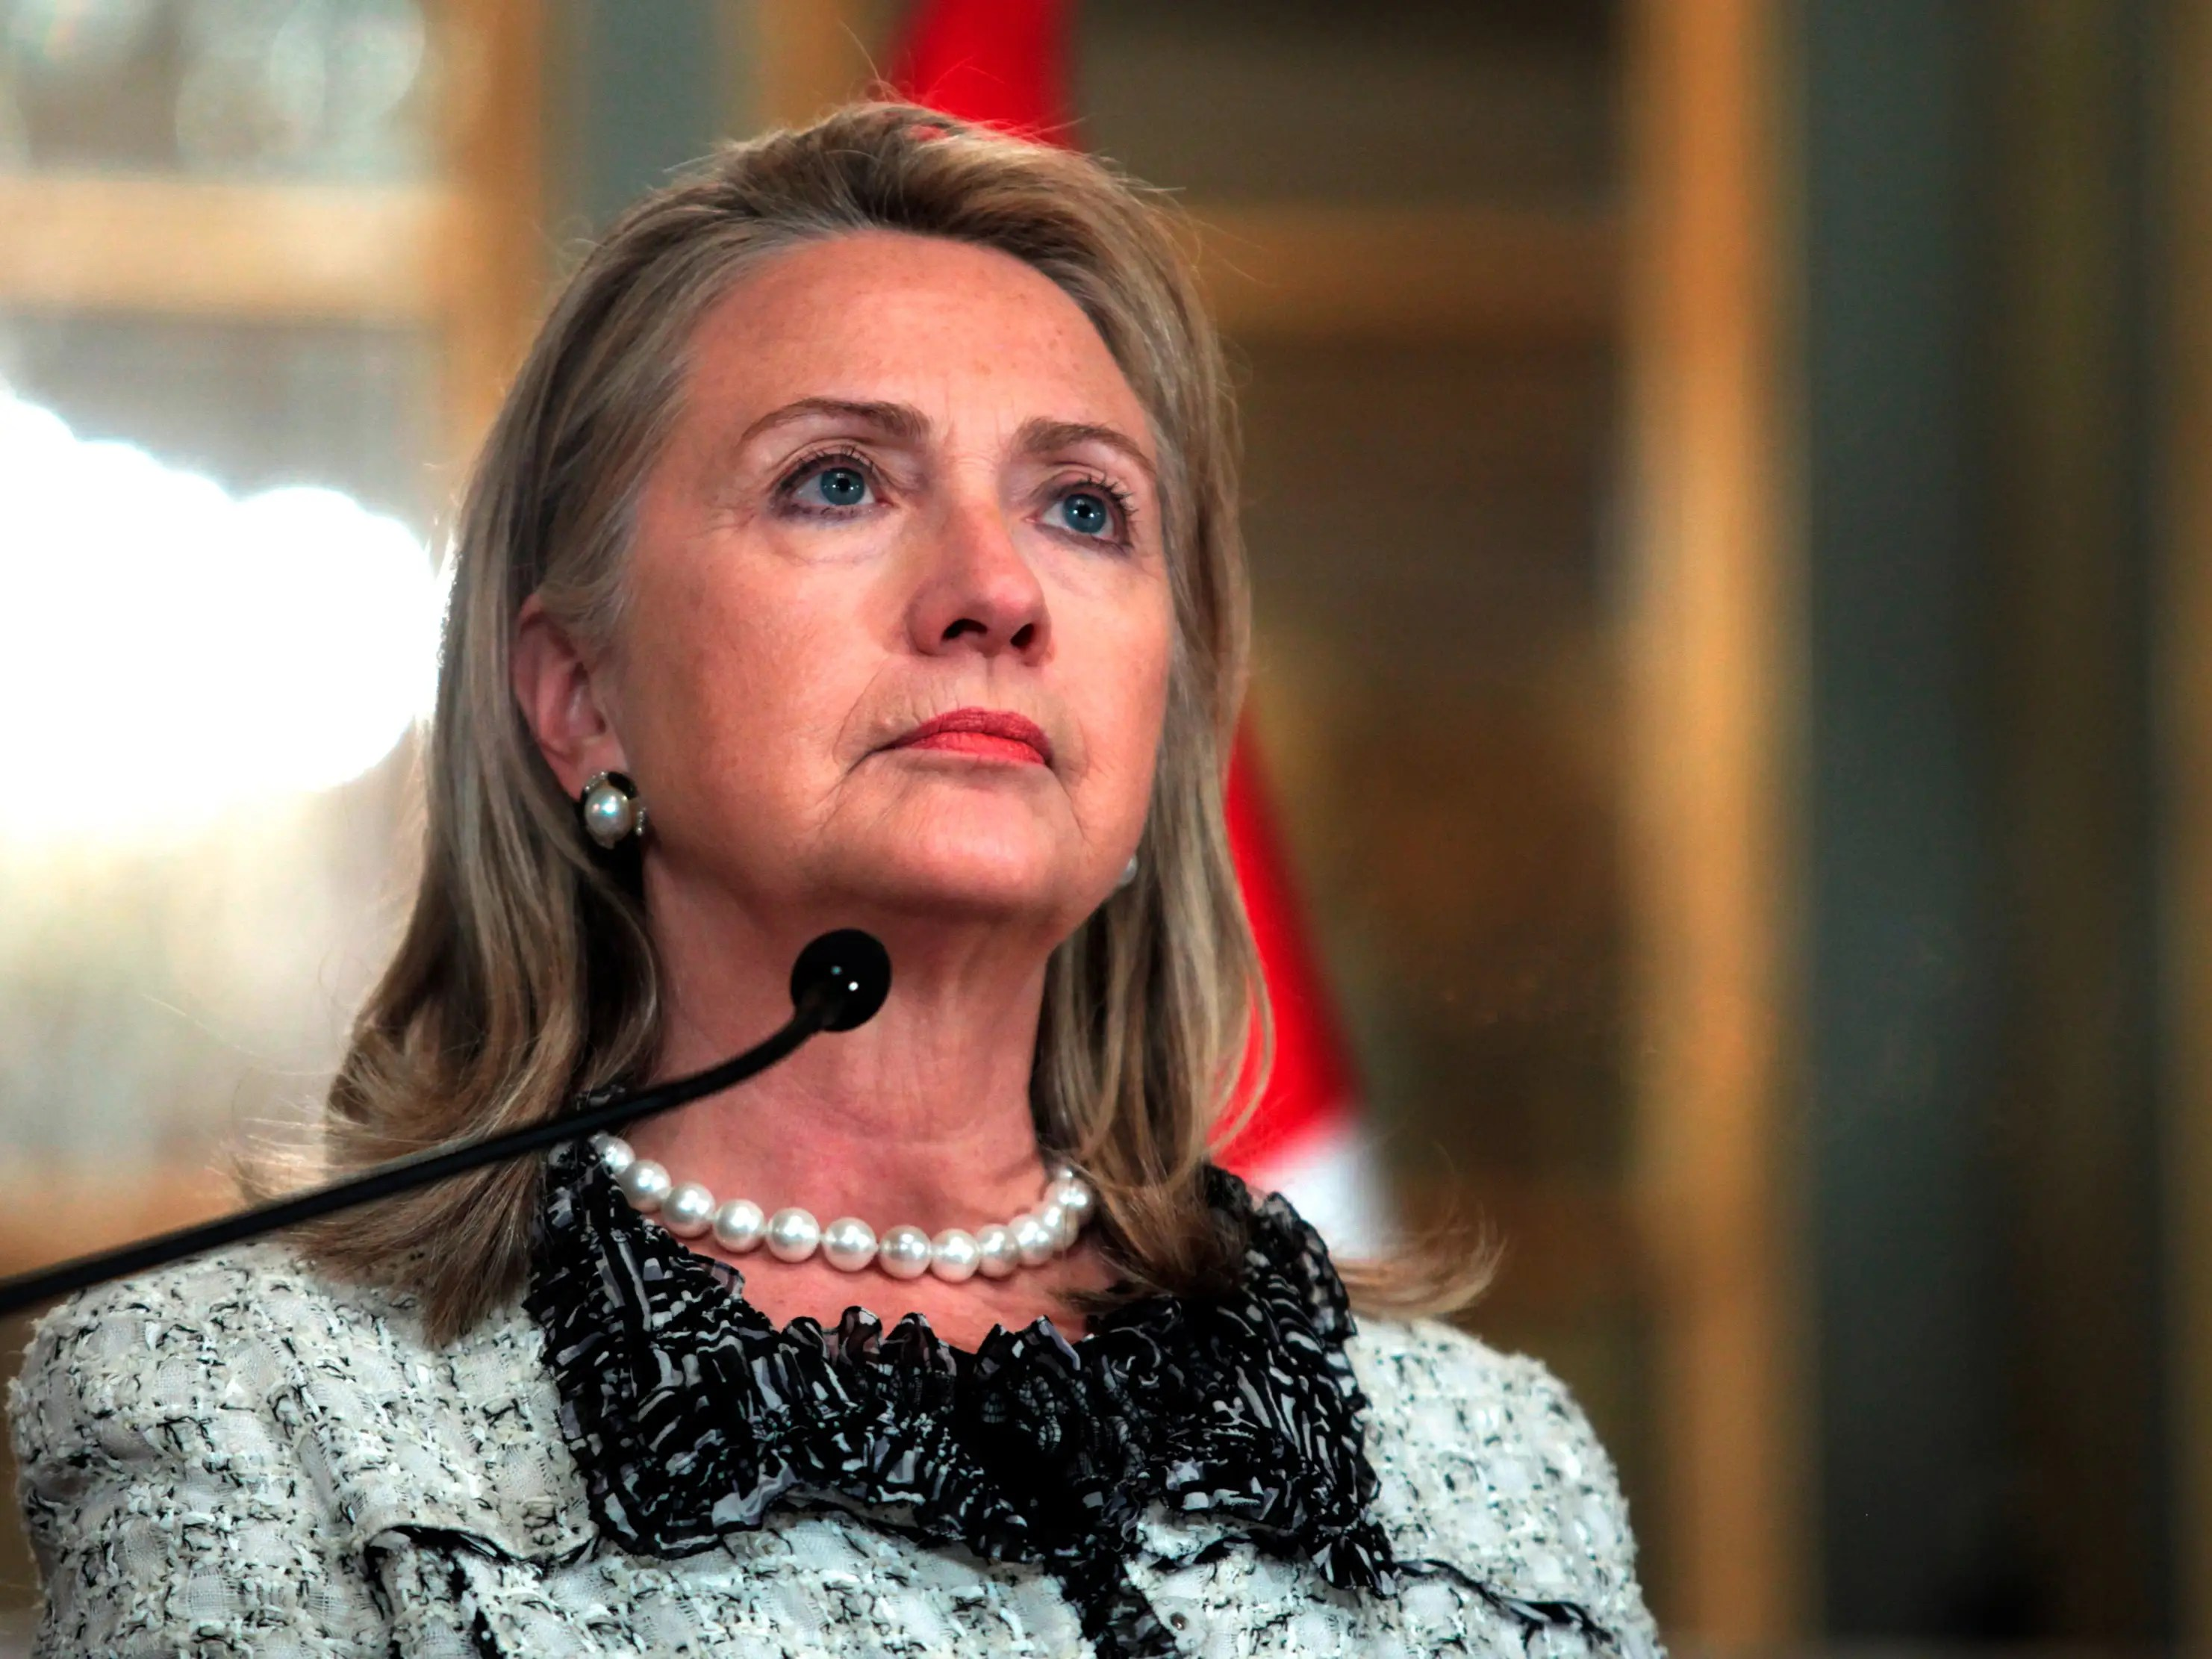 Clinton's State Department was rocked by controversy after the attack in Benghazi, Libya, that left a US ambassador and three other Americans dead. A House committee investigated her and the department's handling of the situation.